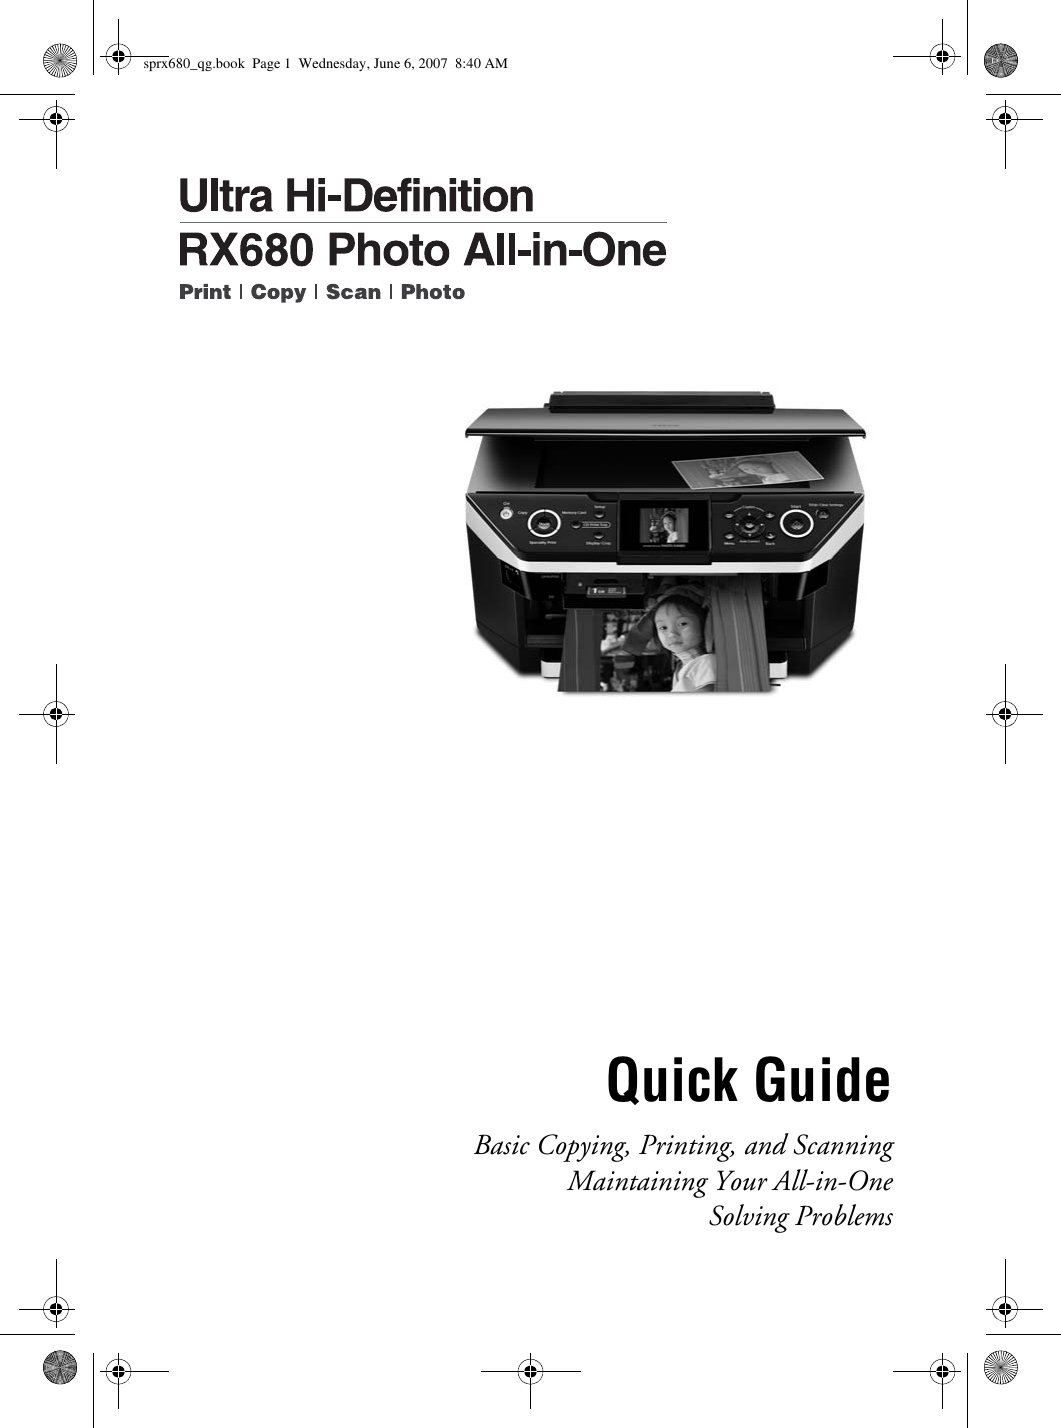 EPSON STYLUS PHOTO RX680 ALL-IN-ONE PRINTER WINDOWS 7 DRIVERS DOWNLOAD